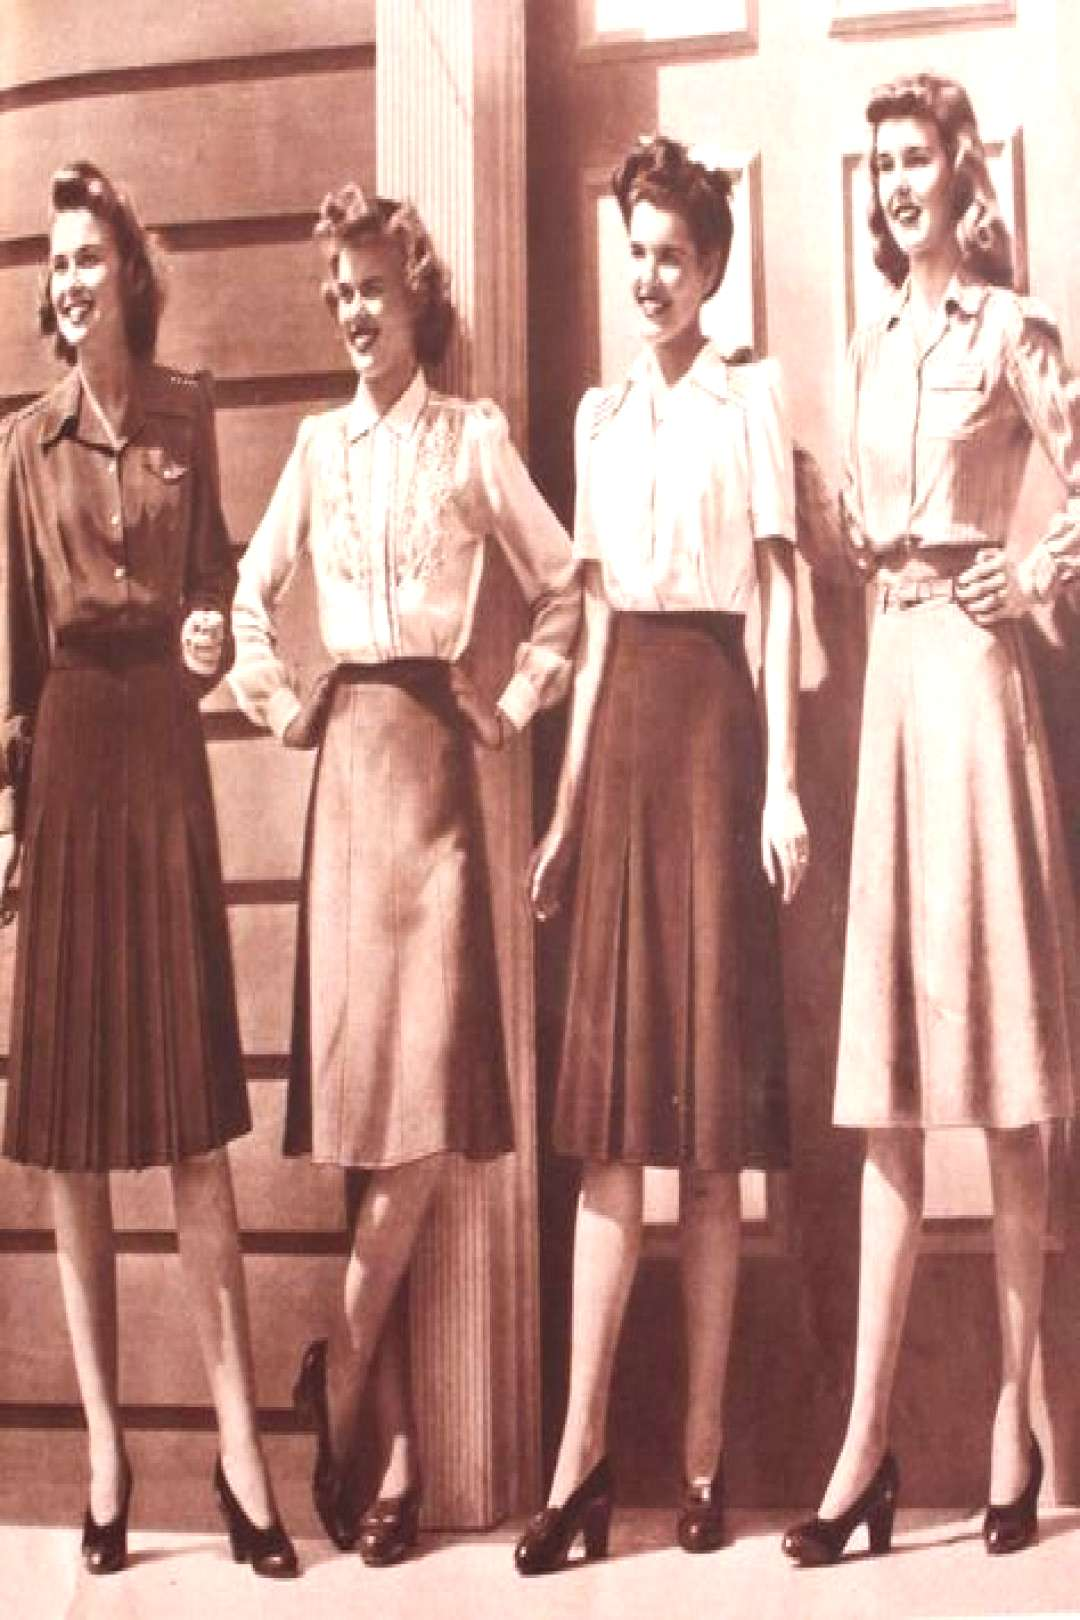 1940s Fashion Icons 1940's Vintage Fashion Inspiration For Vintage Expert Kate Beavis, blogger, wri